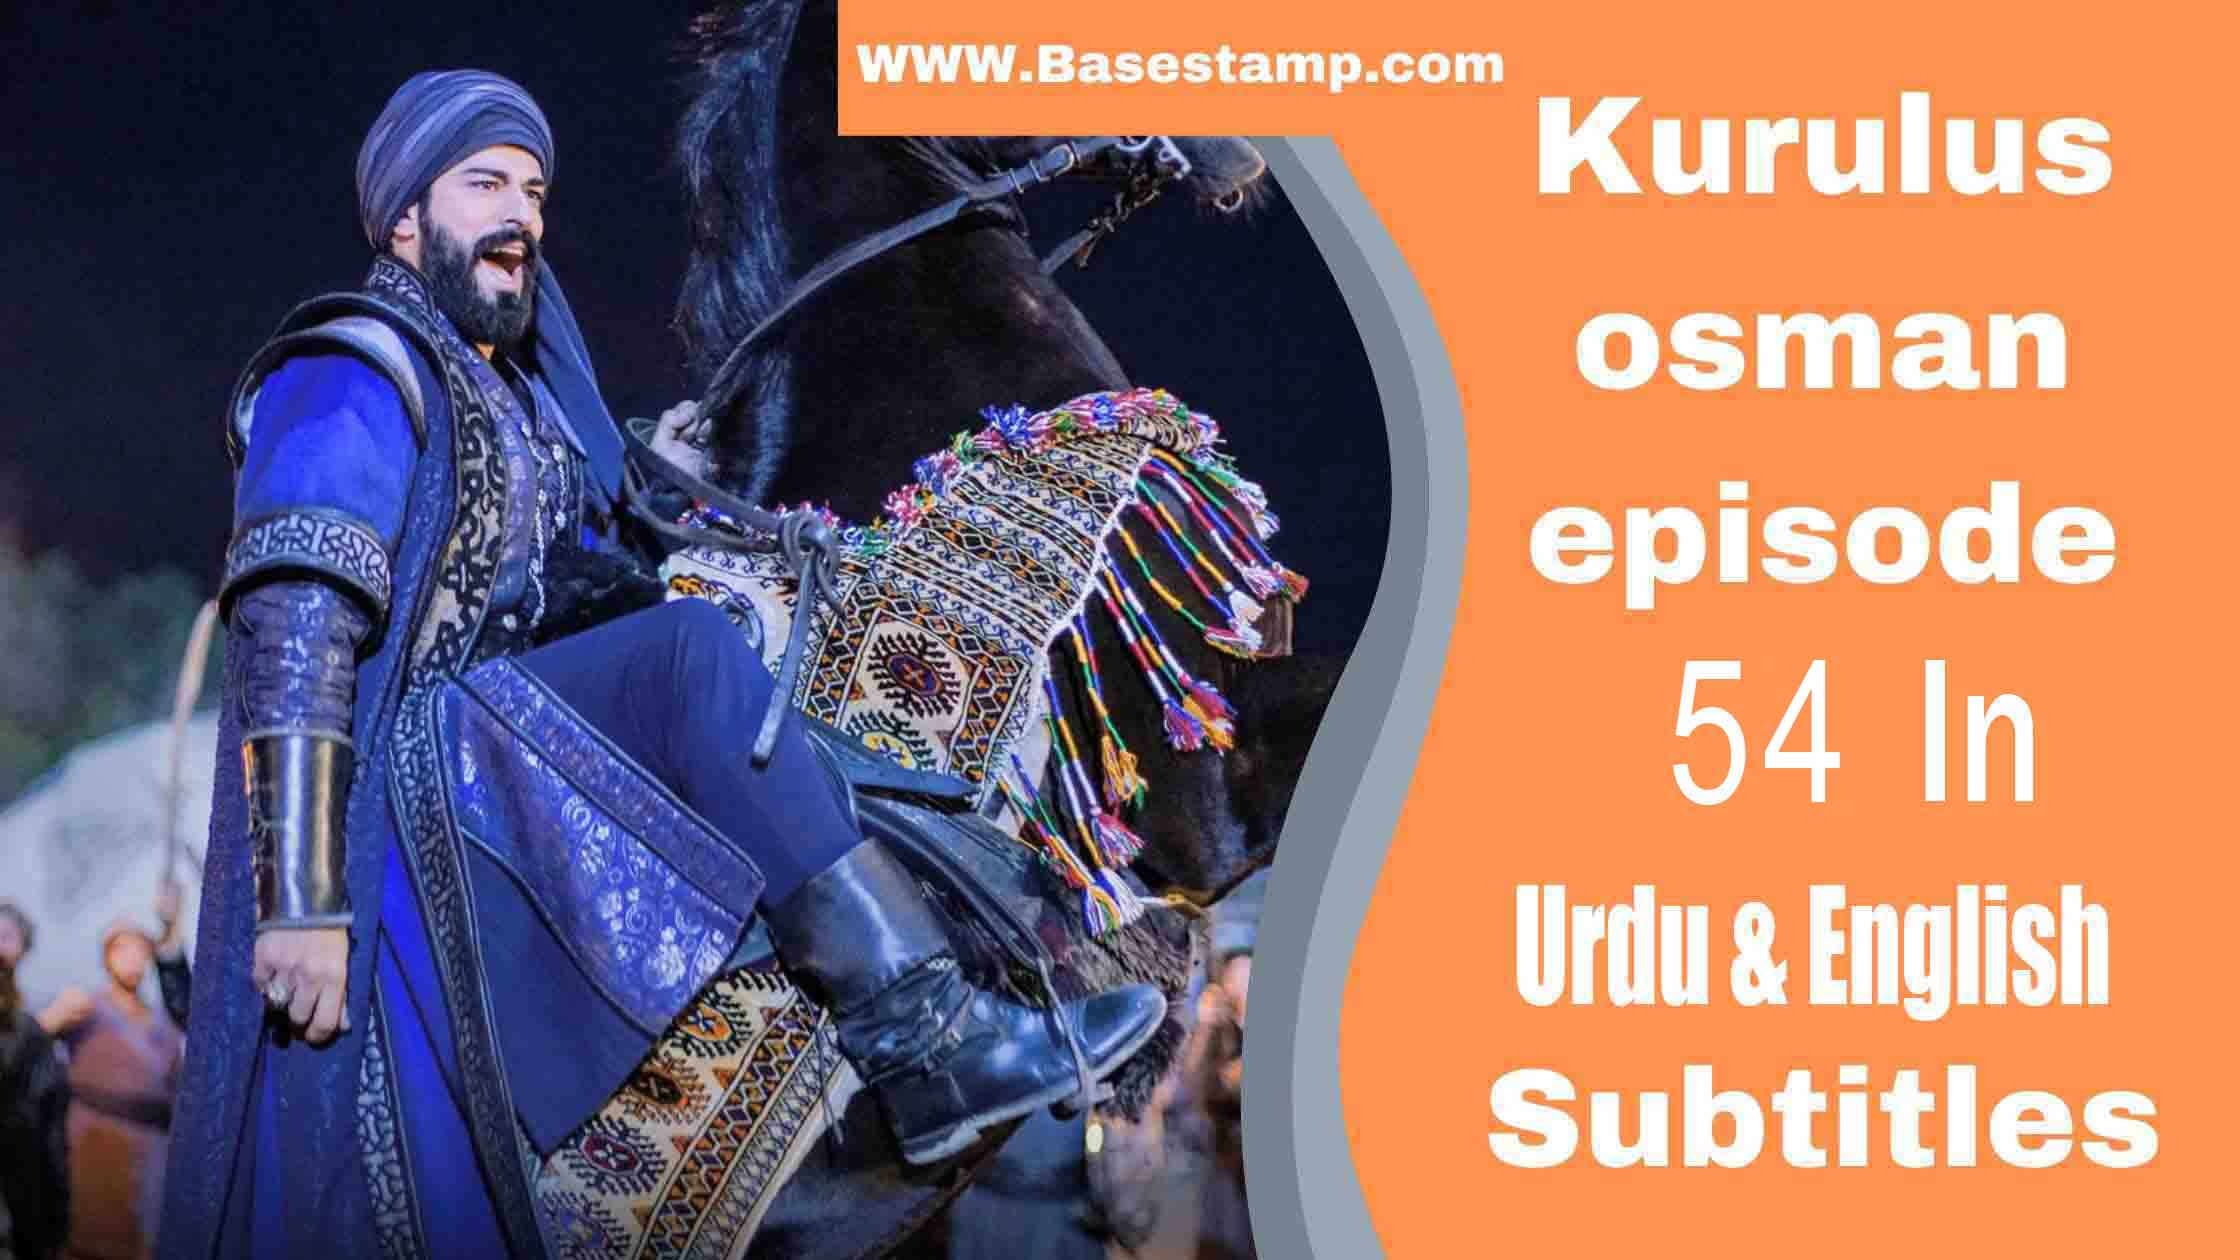 Kurulus Osman Season 2 Episode 54 In Urdu & English Subtitles